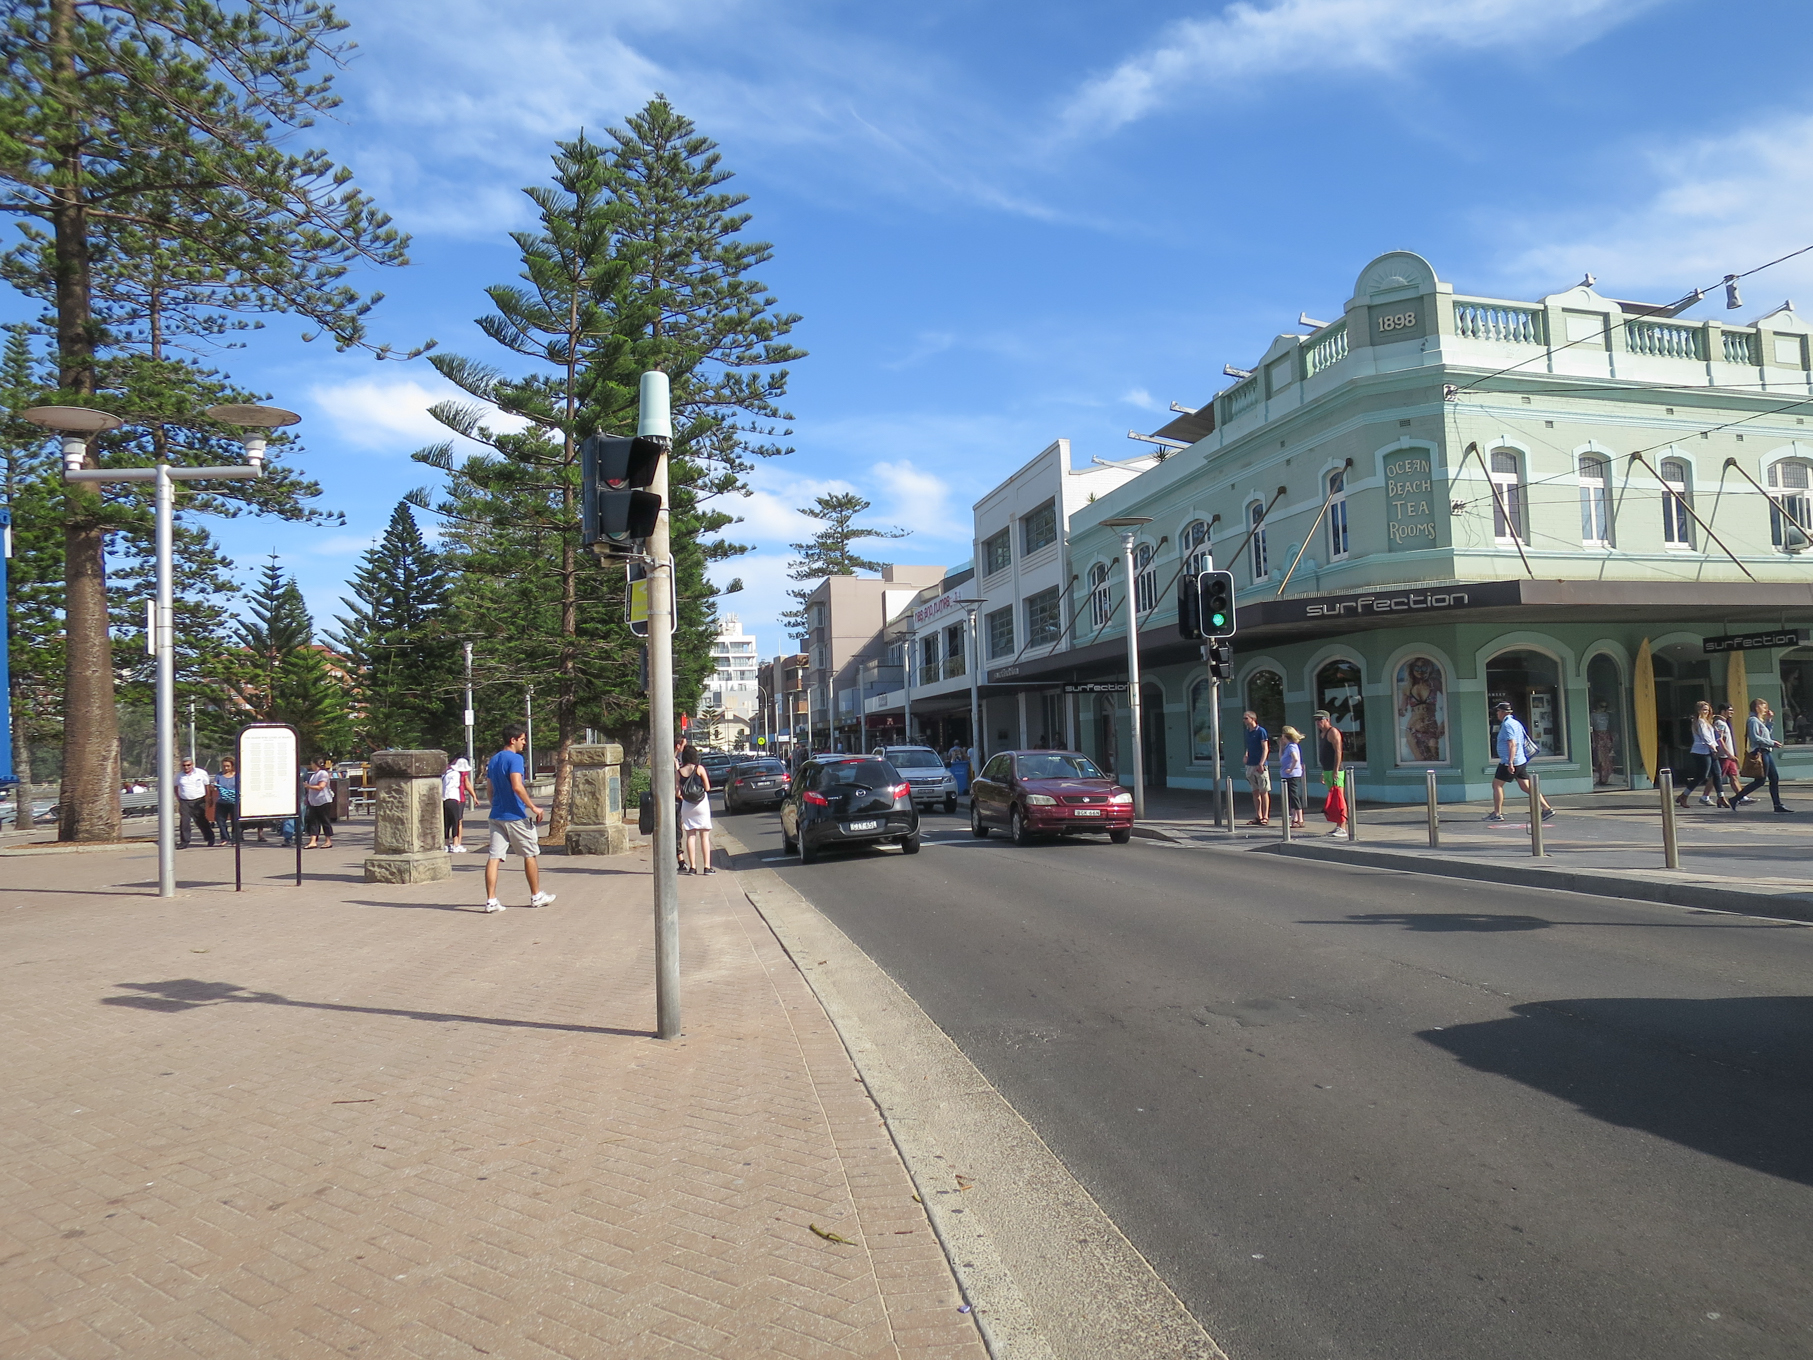 Figs 22 and 23: to Manly beach, Sydney, and the commercial and tourist accommodation uses adjacent to the beach